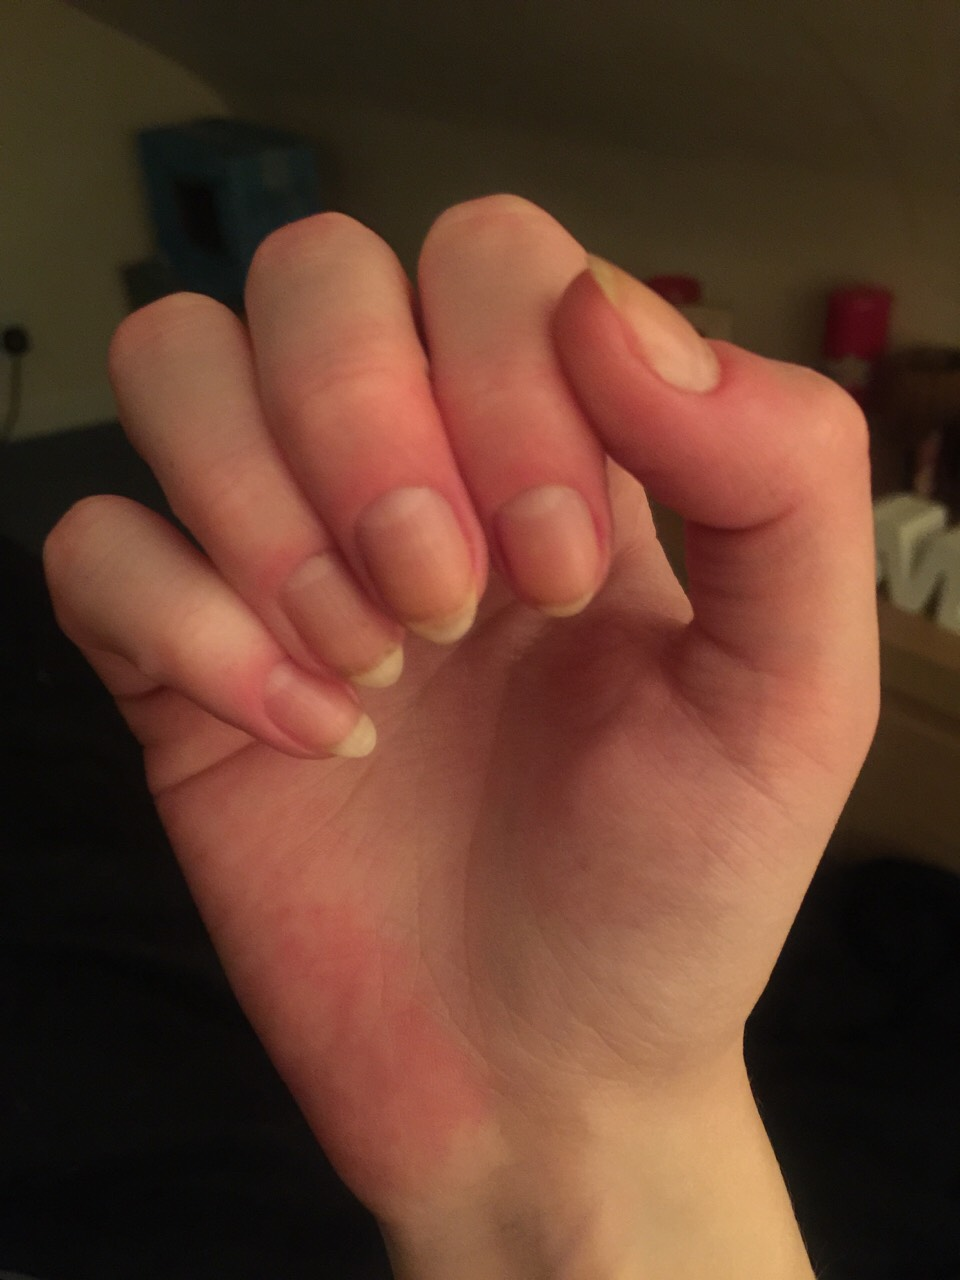 These are my real nails after a month of using this tip!😱🙌🏻😝💅🏻👌🏻